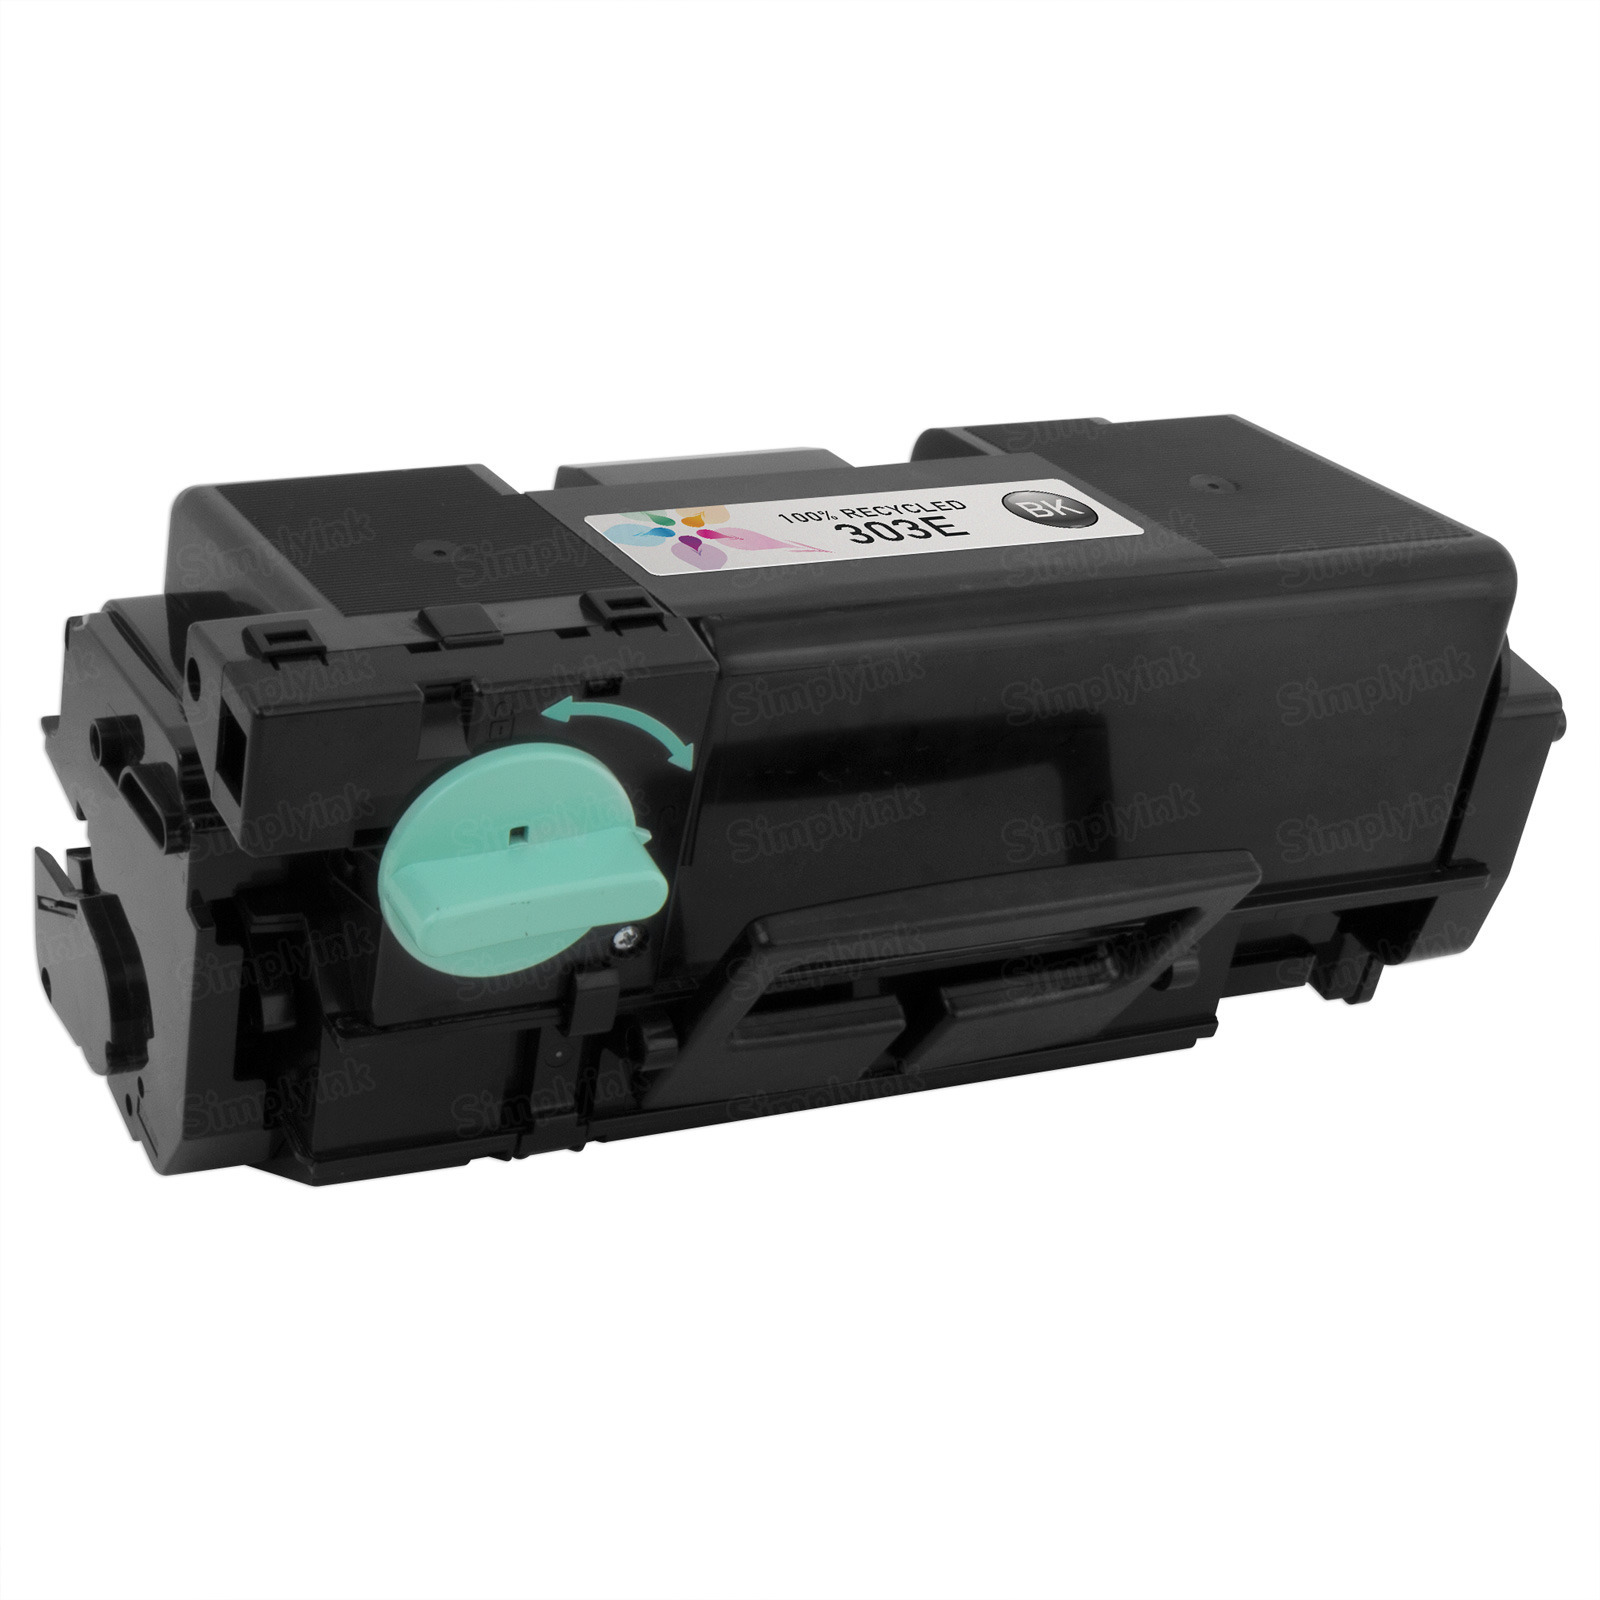 Remanufactured ProXpress M4580FX Black Toner for Samsung (303E)